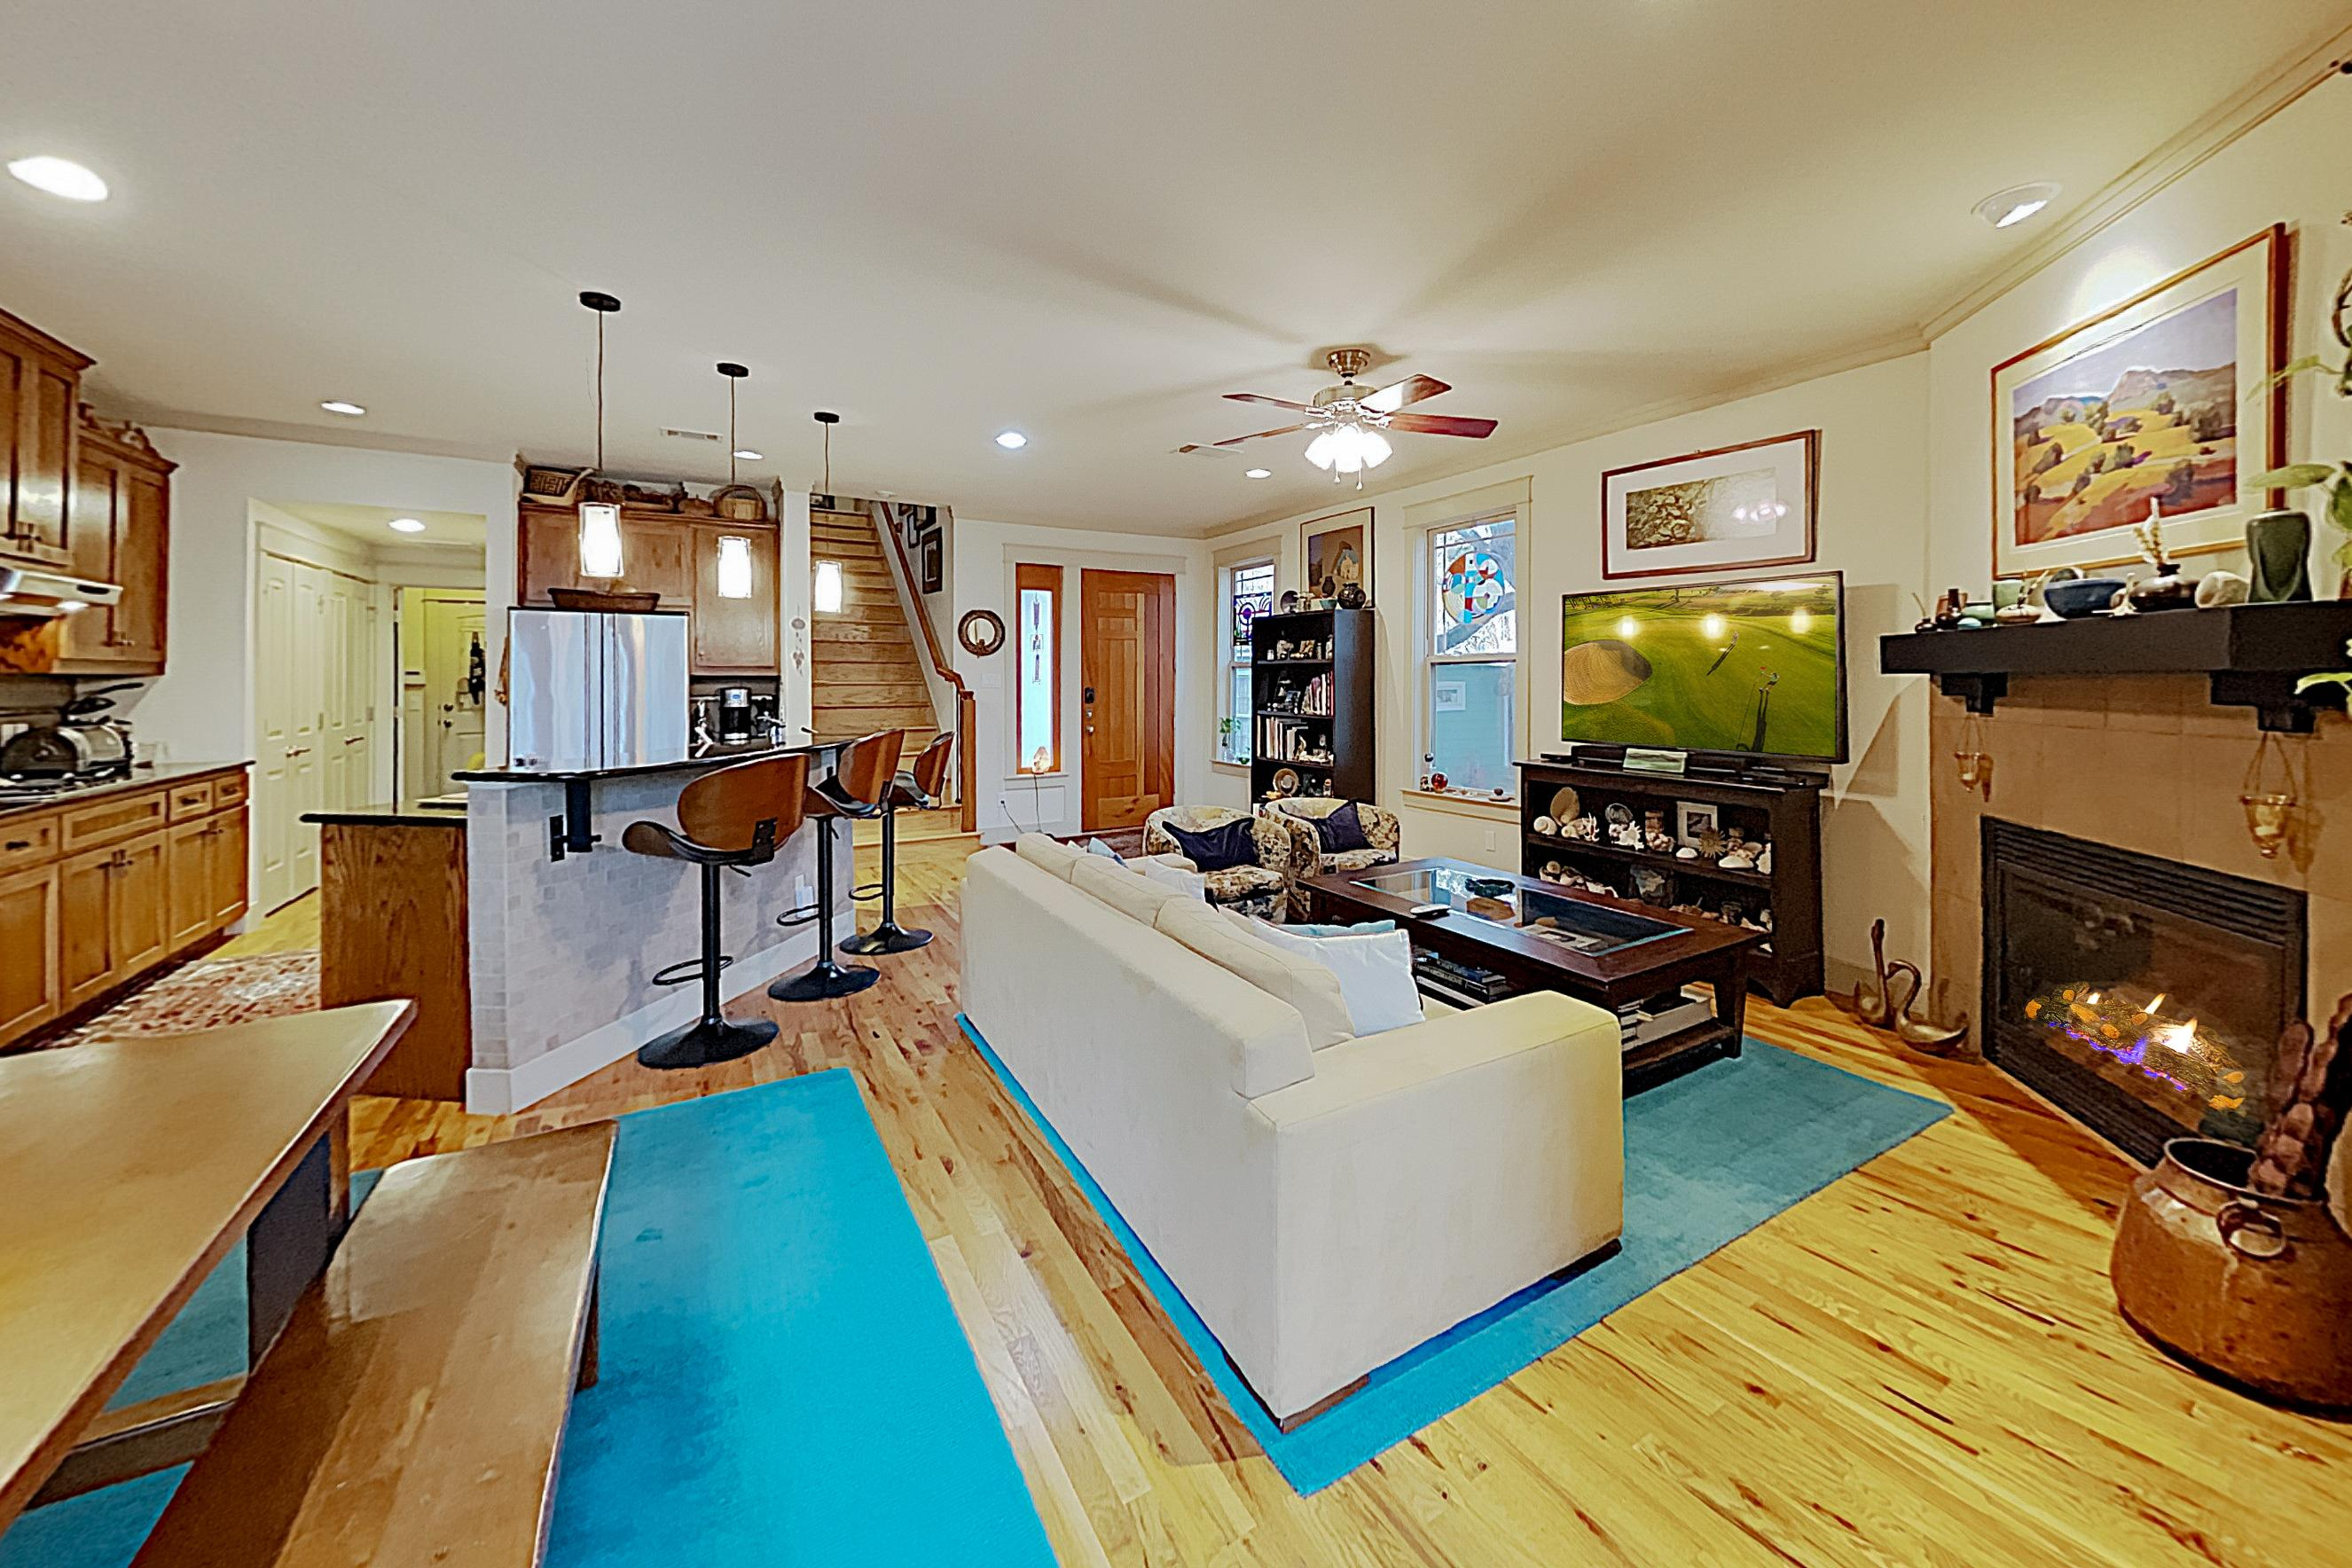 Welcome to Austin! This home is professionally managed by TurnKey Vacation Rentals.